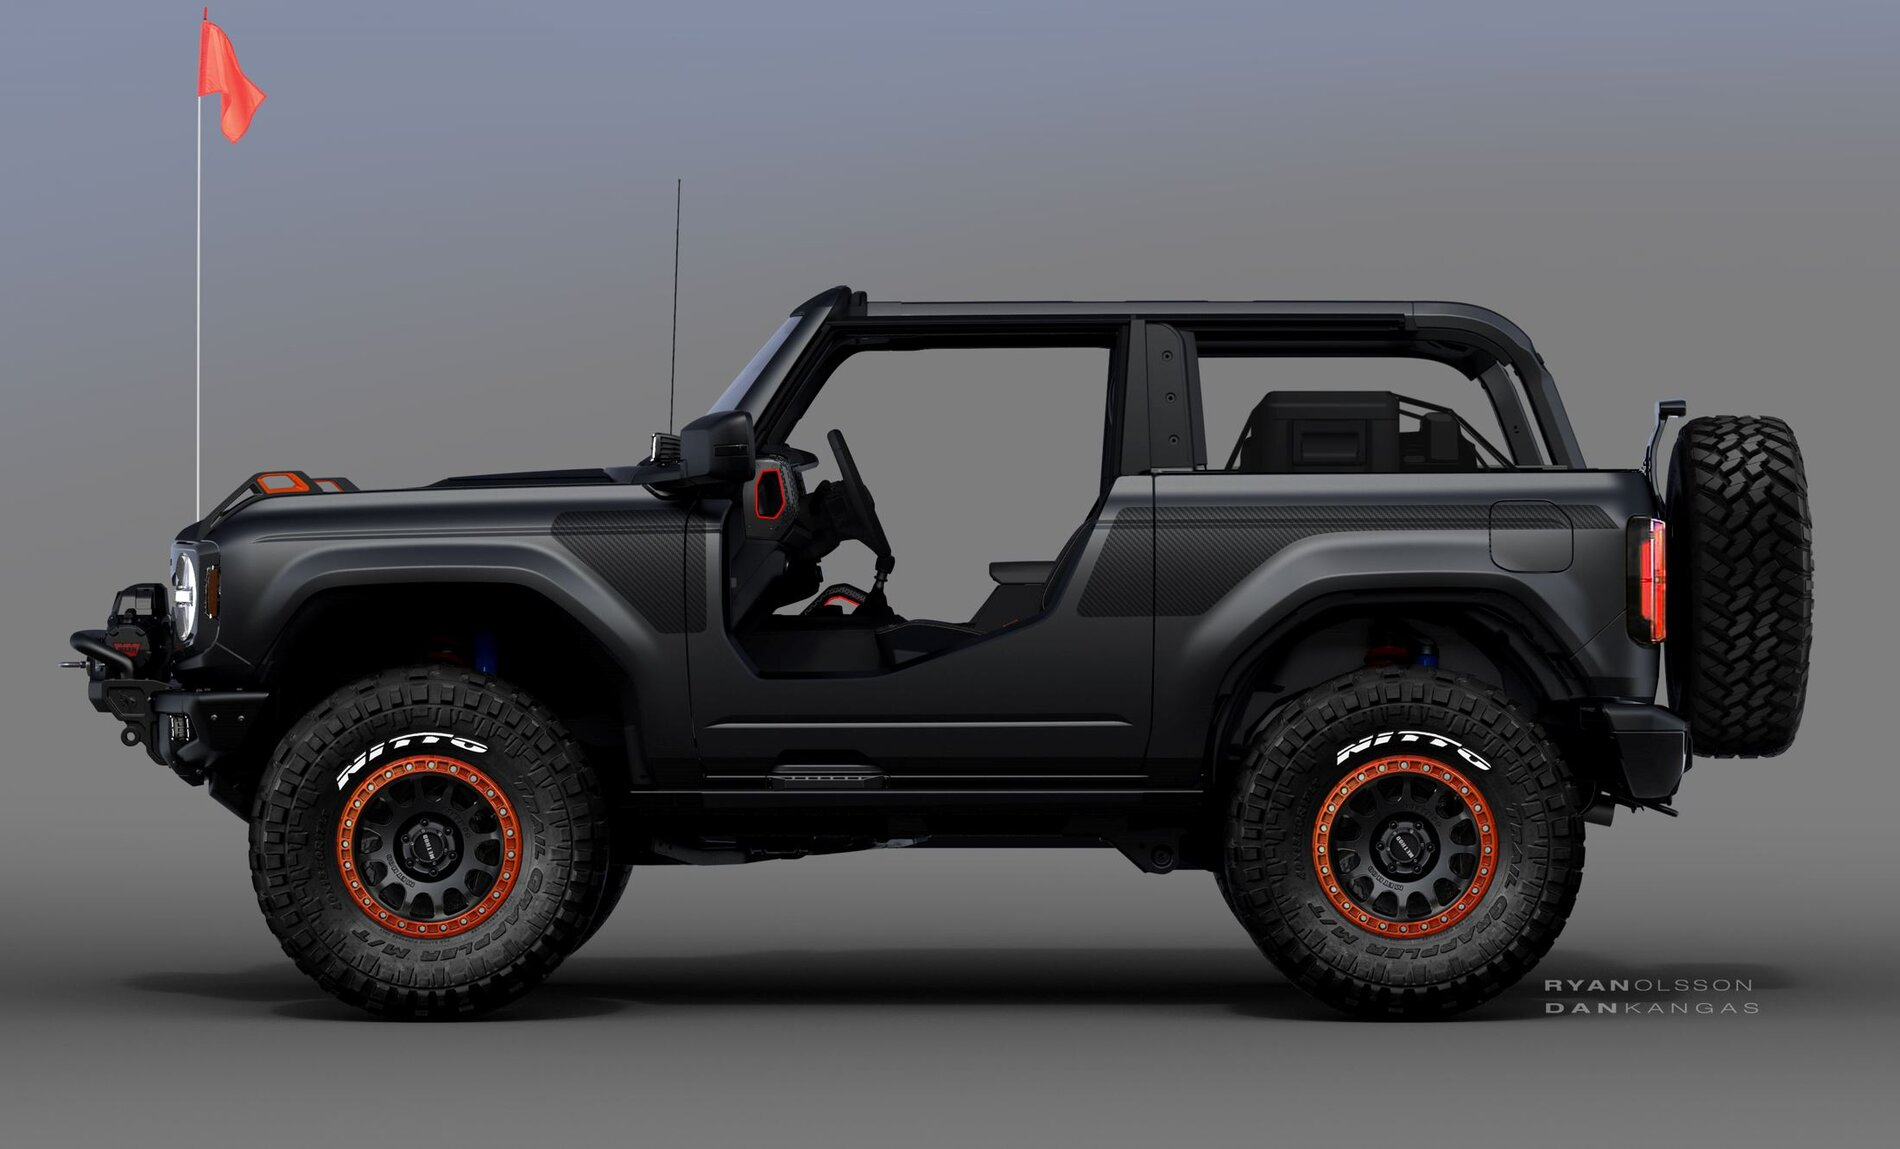 2021-Ford-Bronco-Badlands-Sasquatch-2-Door_Concept_03.JPG